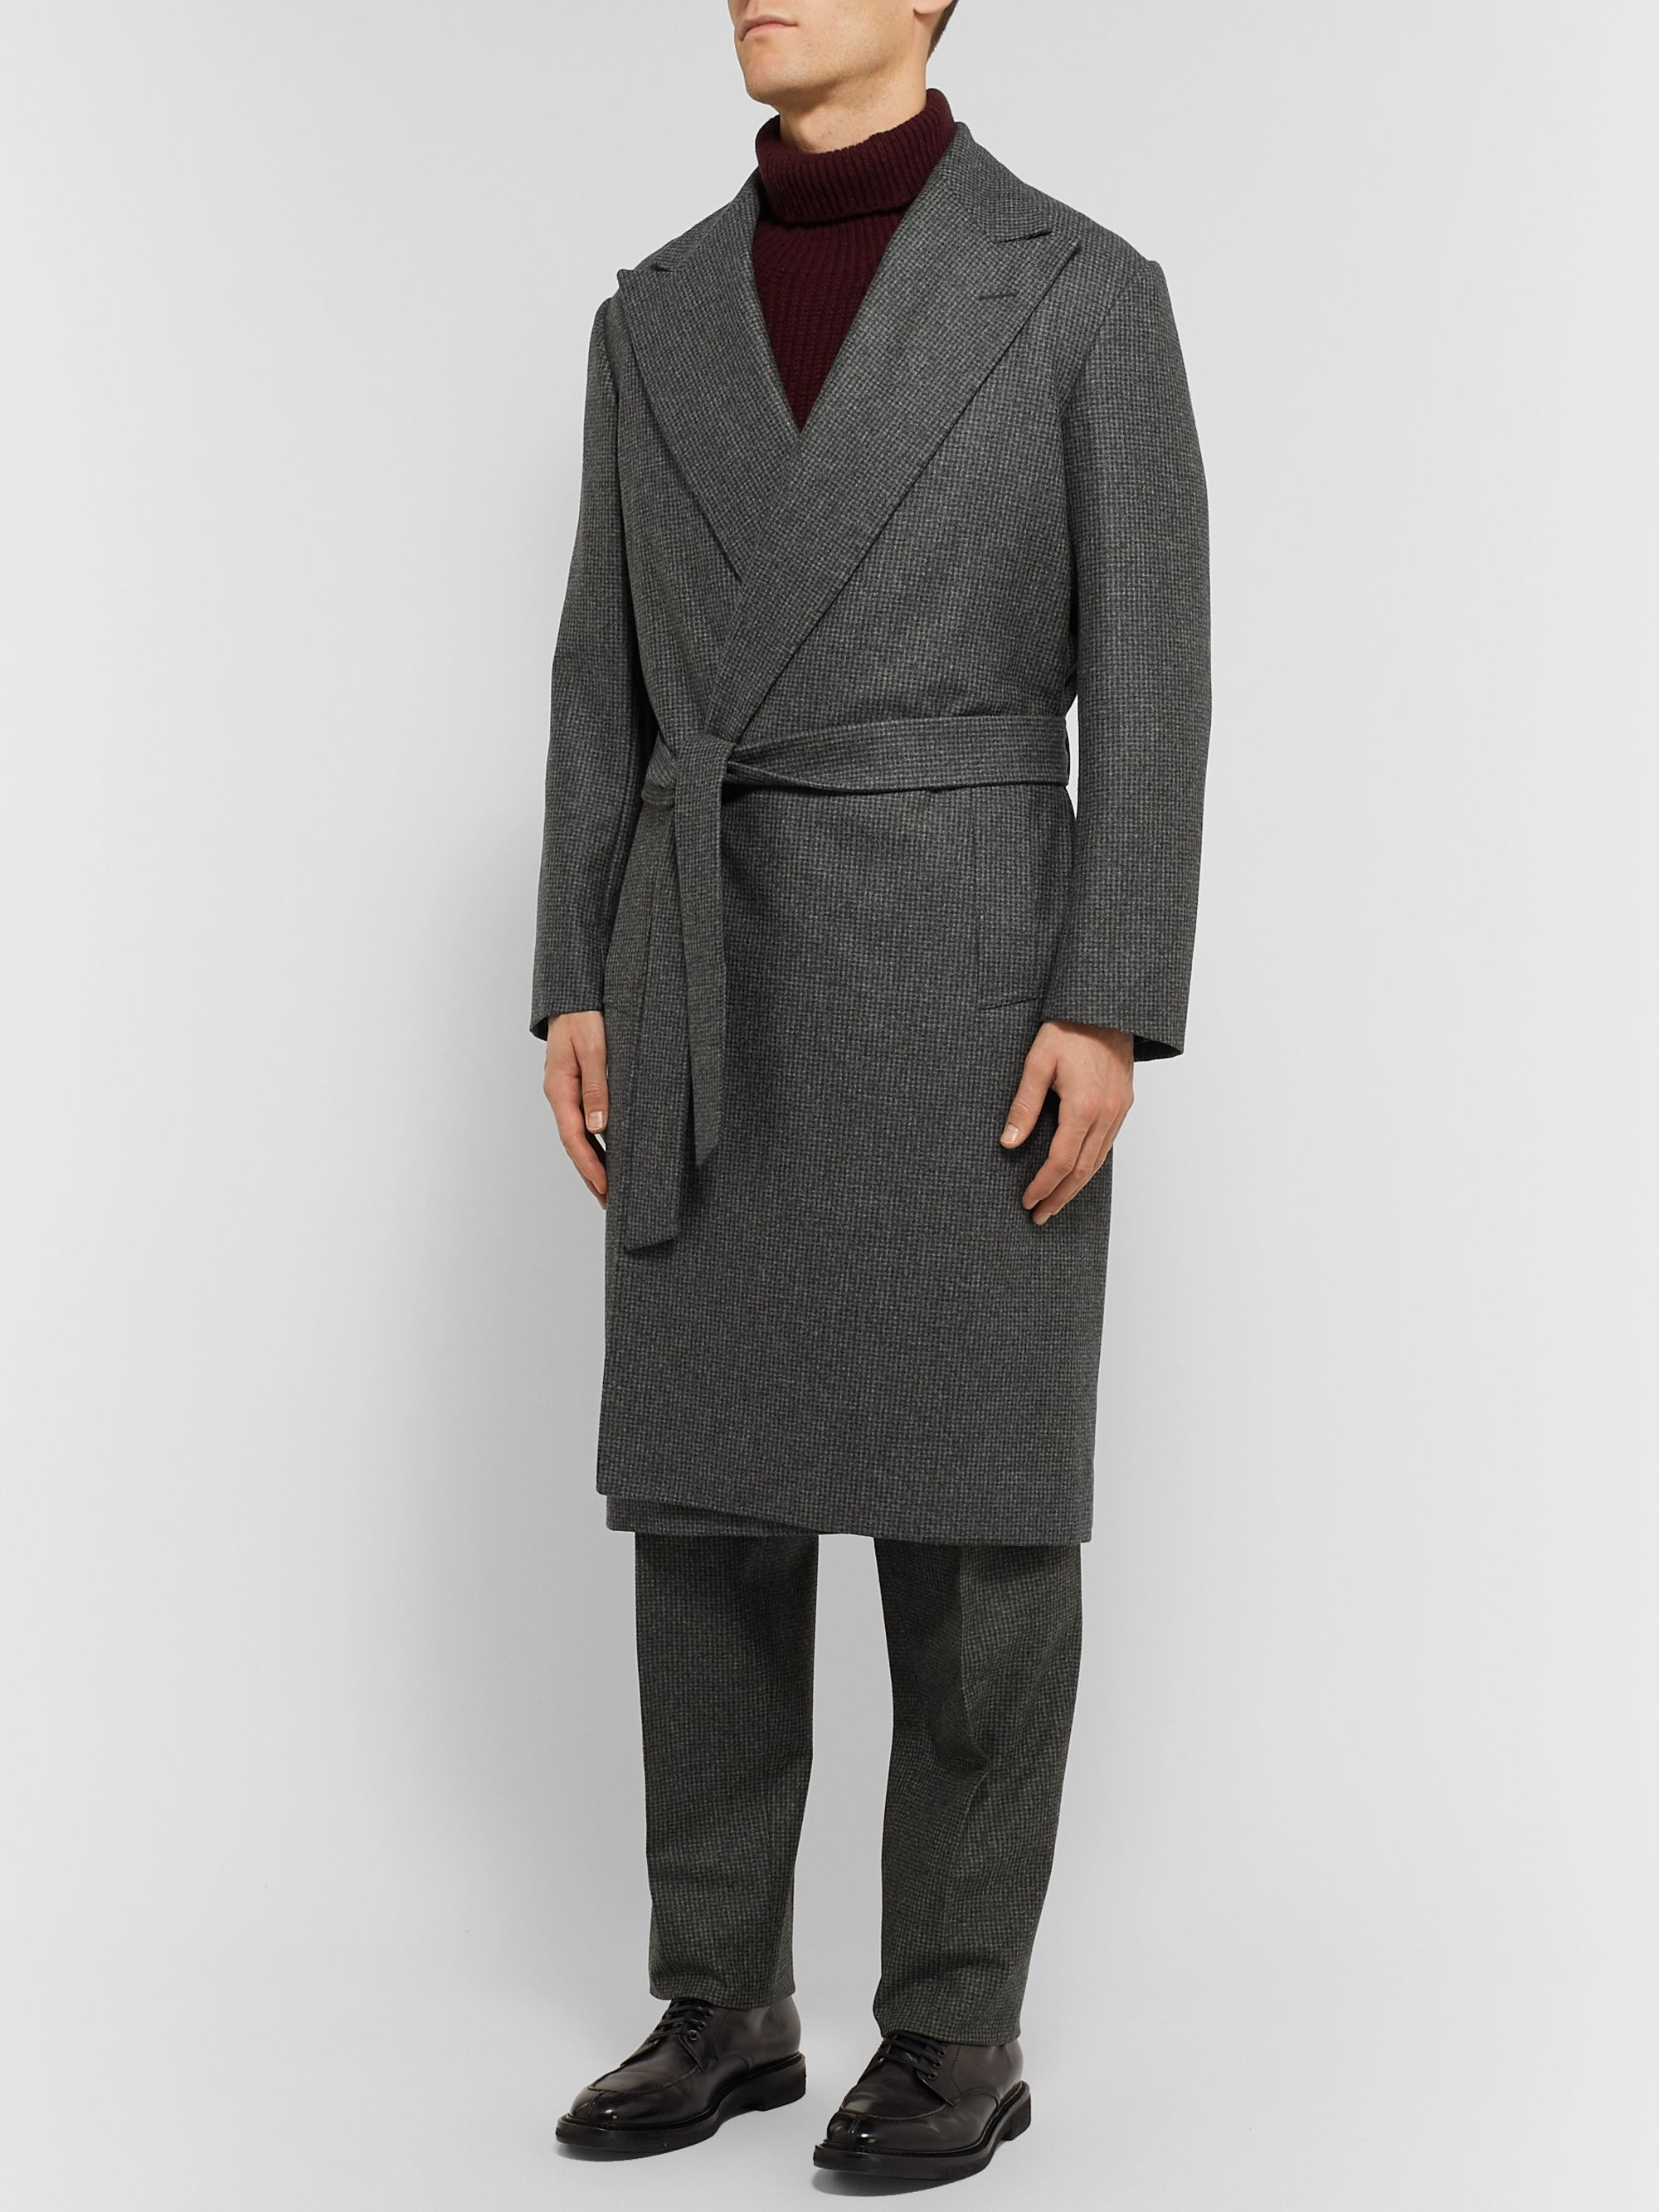 Camoshita + Vitale Barberis Canonico Belted Puppytooth Wool Coat